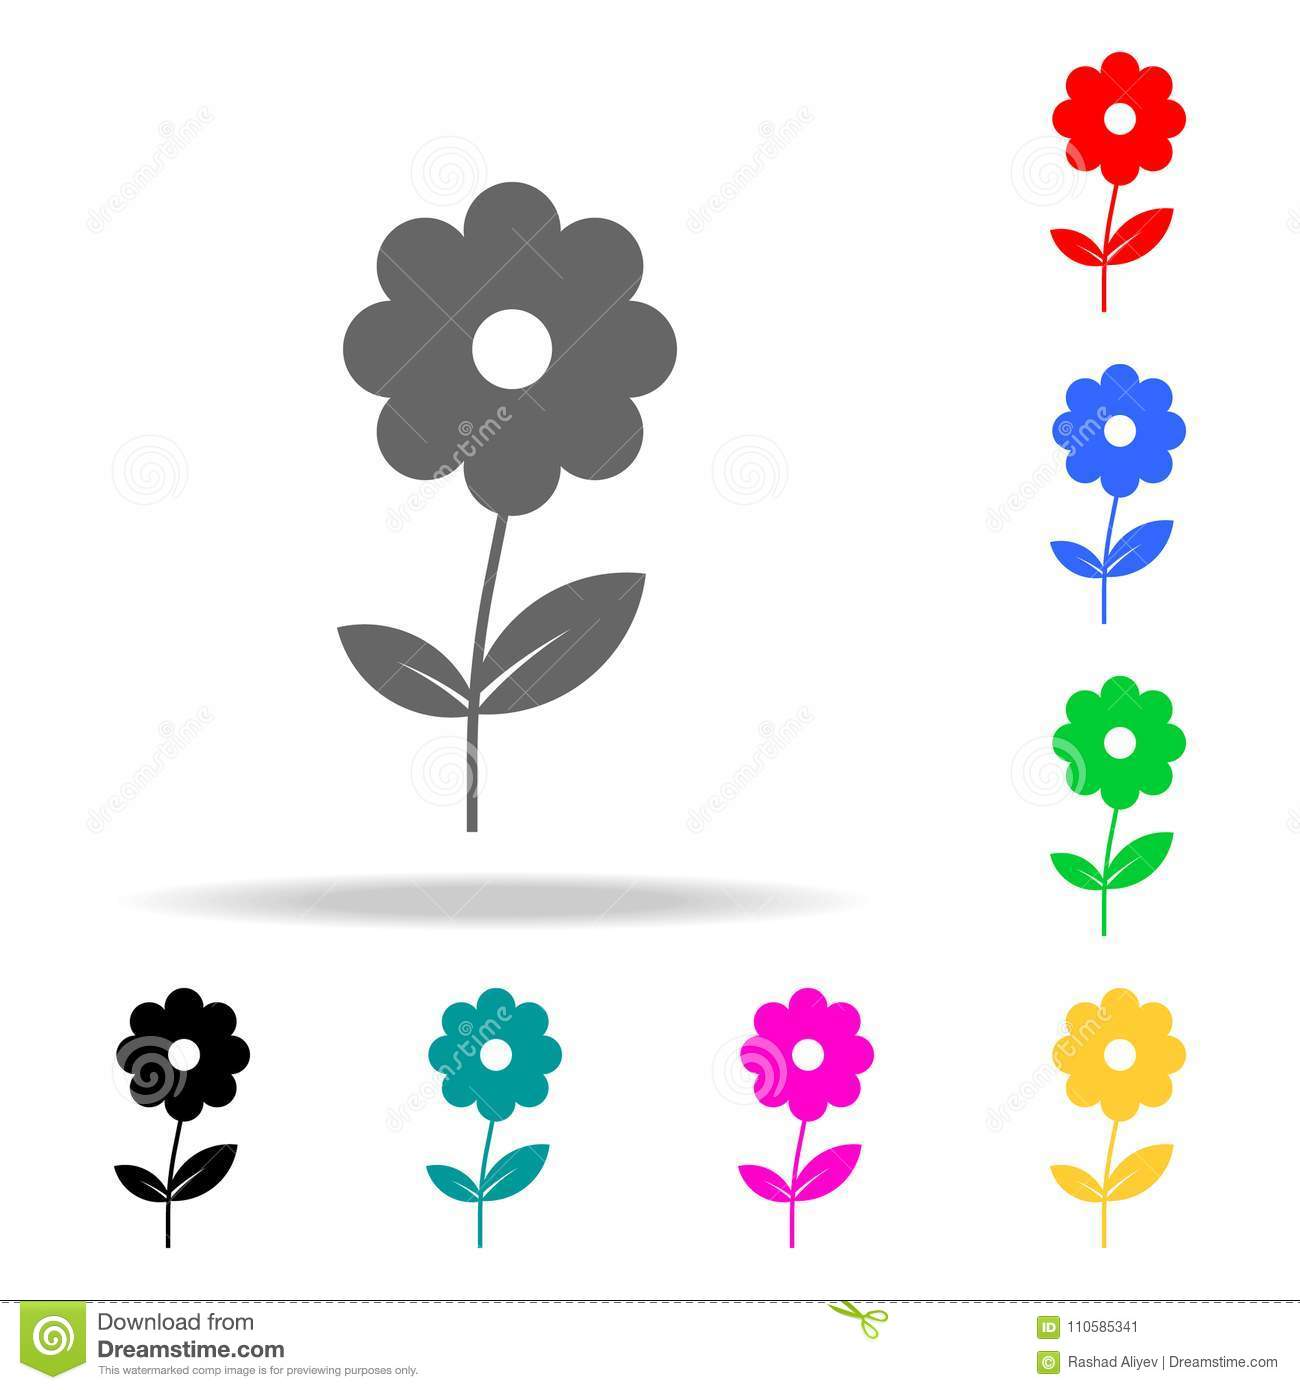 flower icon. Elements in multi colored icons for mobile concept and web apps. Icons for website design and development, app develo